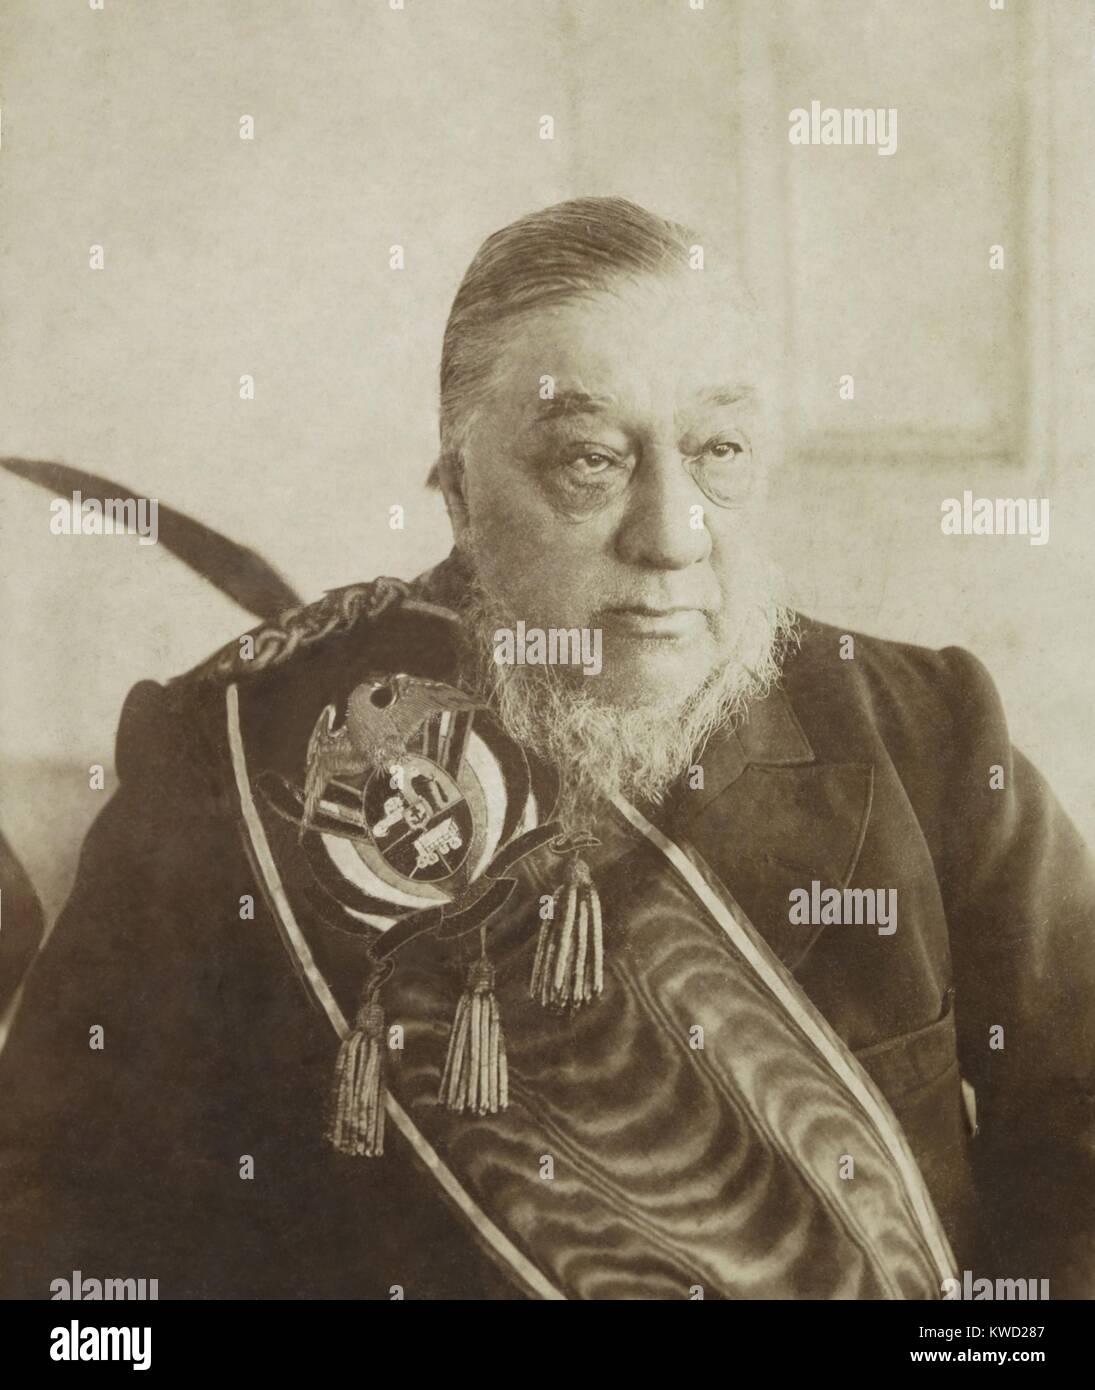 Paul Kruger, exiled President of the South African Republic, c. 1900-1904. He was forced into European exile when - Stock Image